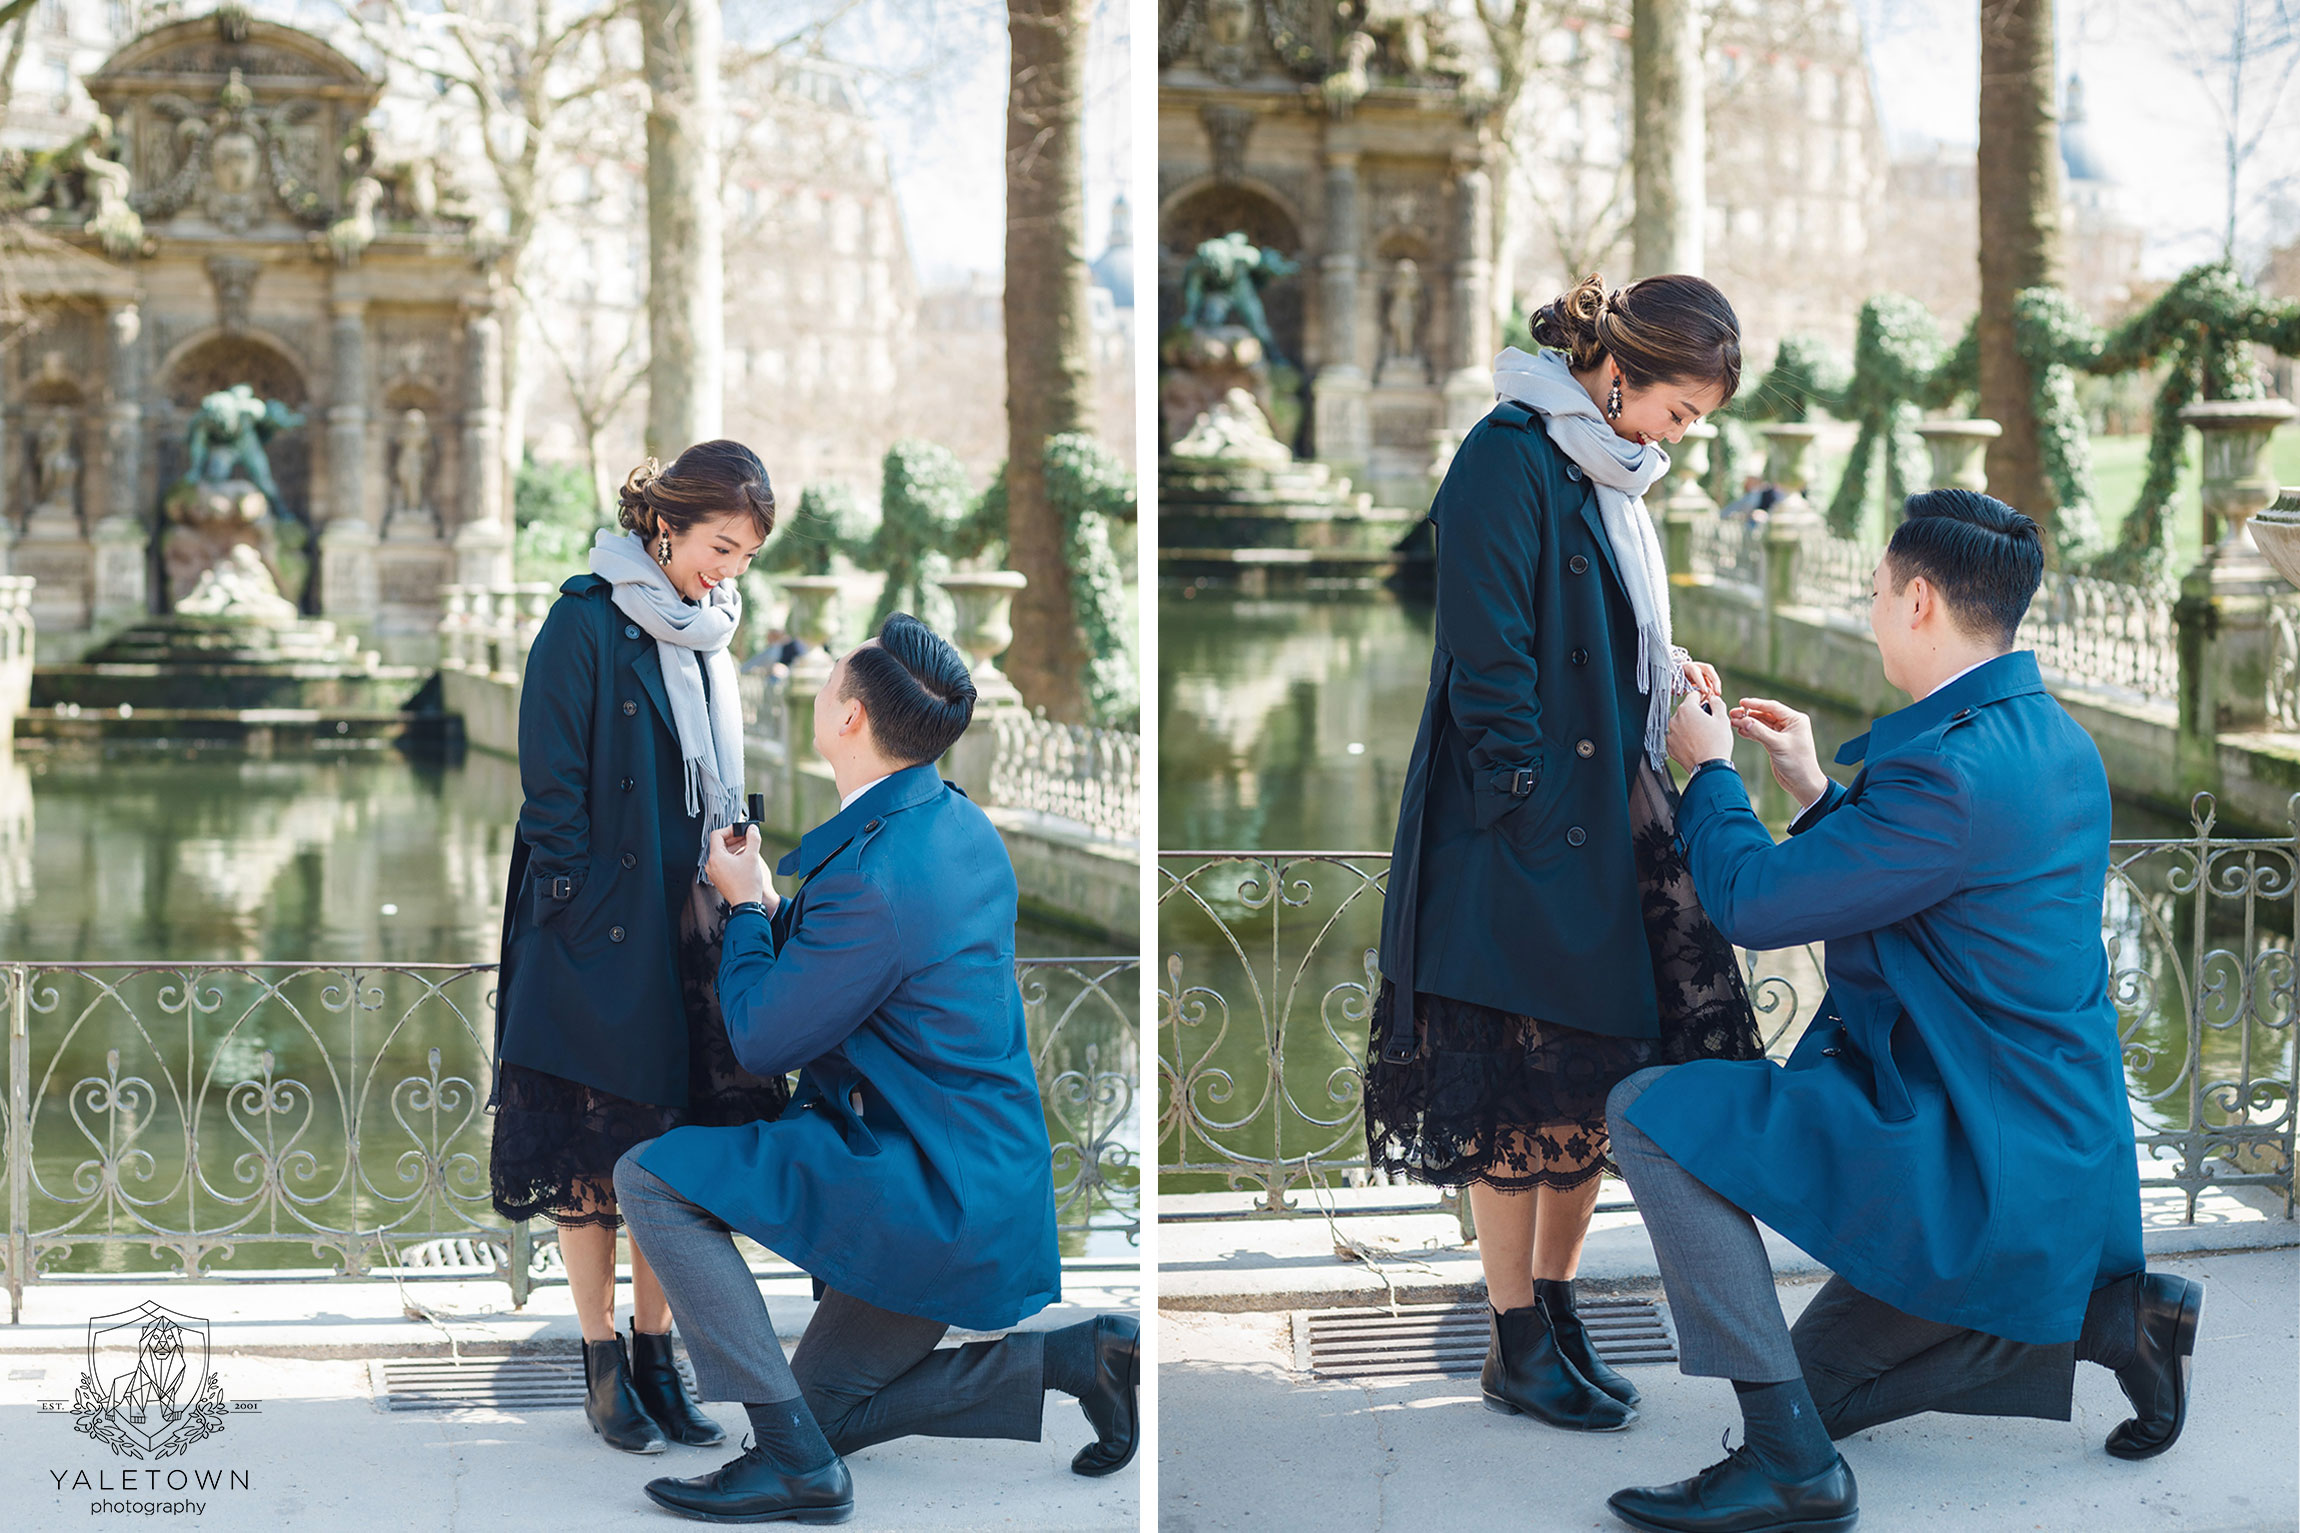 paris-proposal-engagement-session-jardin-du-luxembourg-yaletown-photography-vancouver-wedding-photographer-paris-wedding-photographer-photo